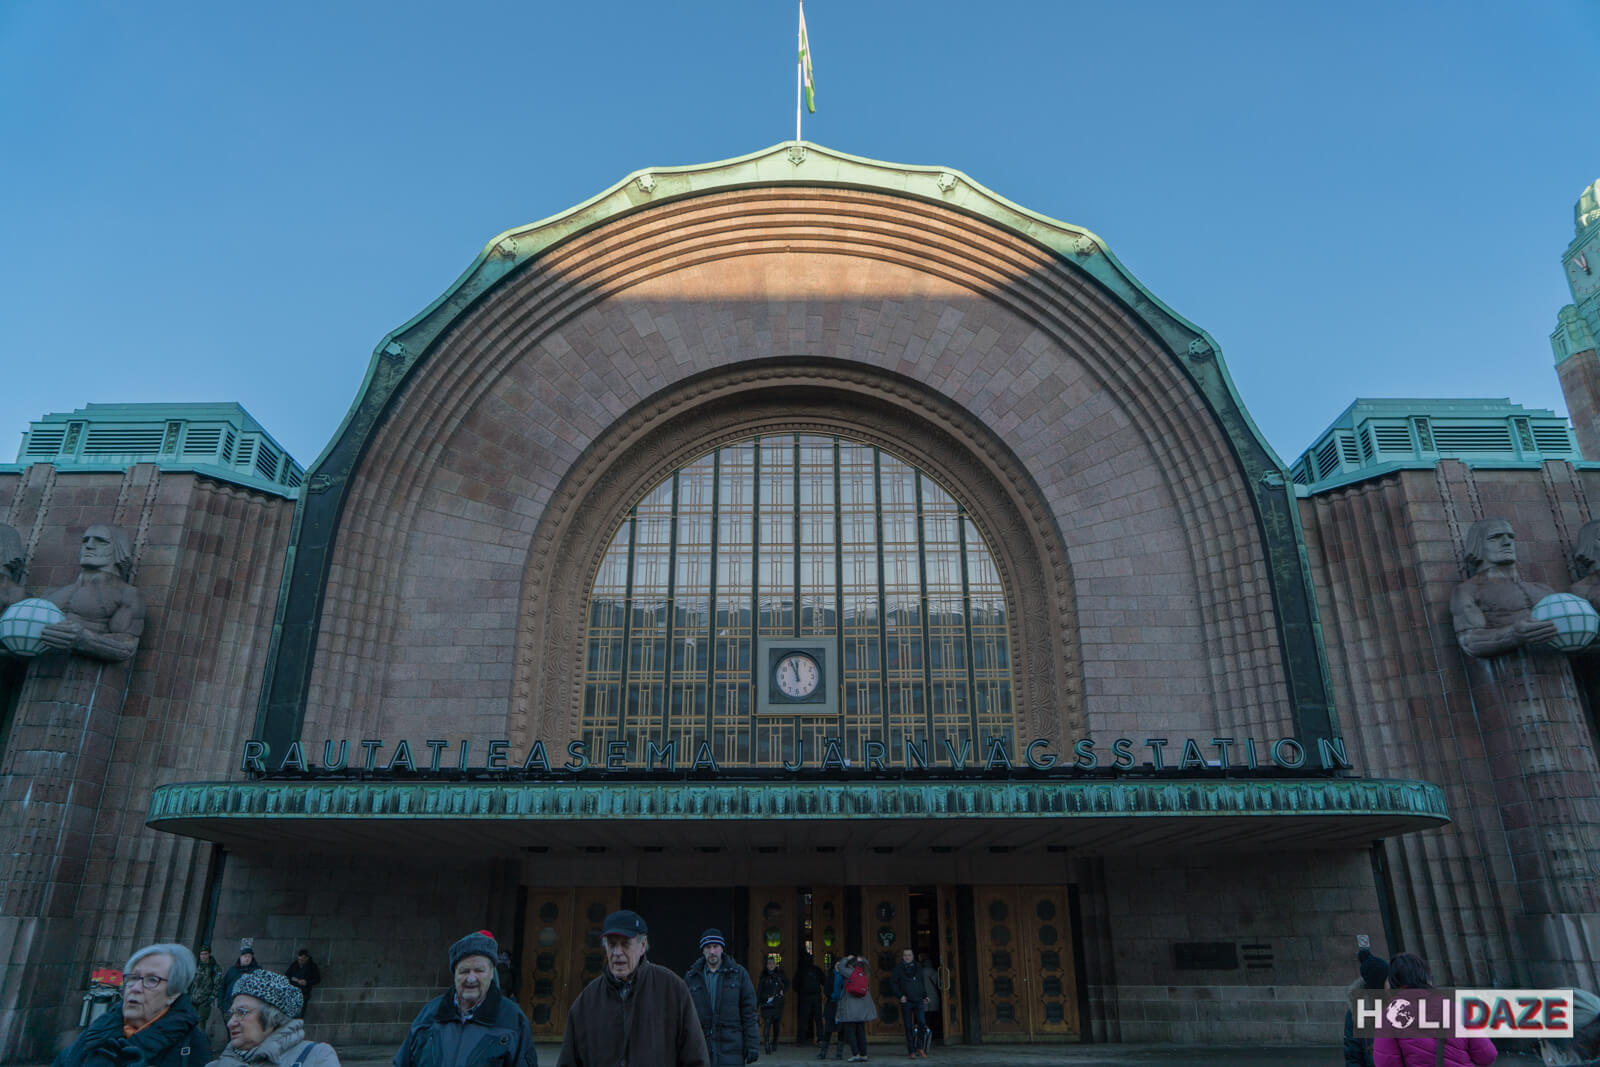 Helsinki Central Station, the first place visitors to Finland see